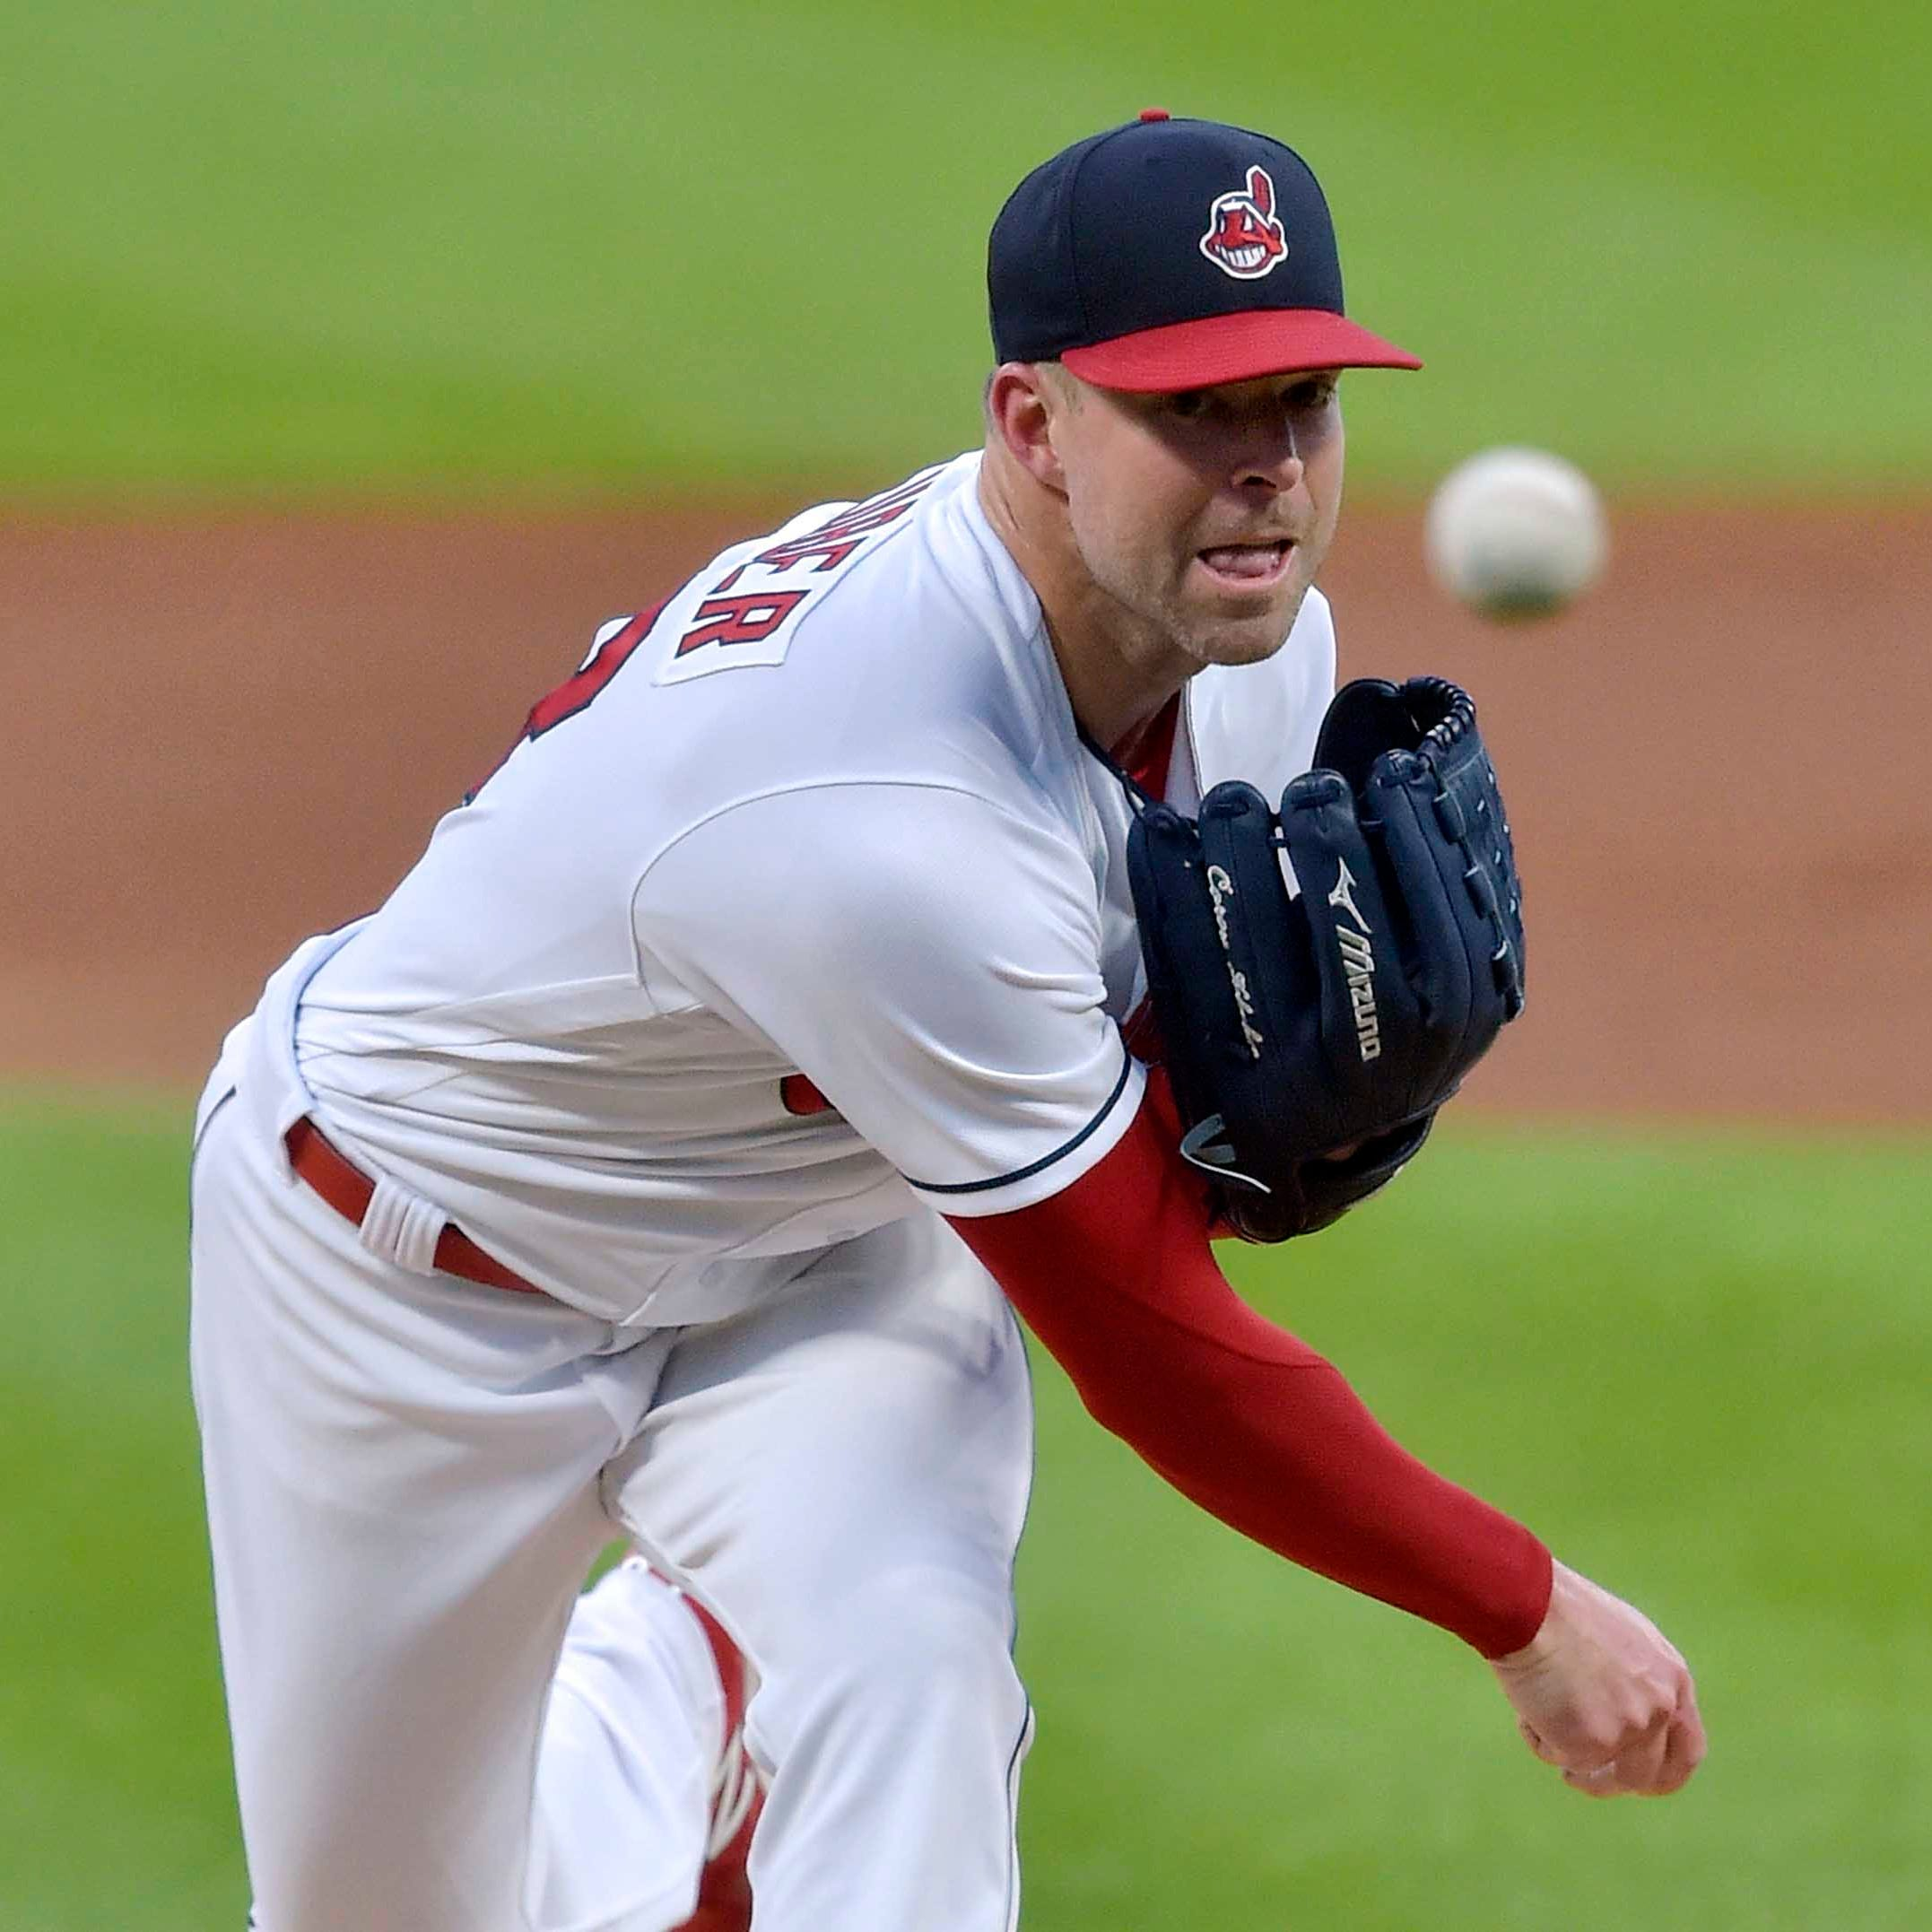 Doc's Morning Line: Will the Reds trade for Corey Kluber? That would be an all-in move.